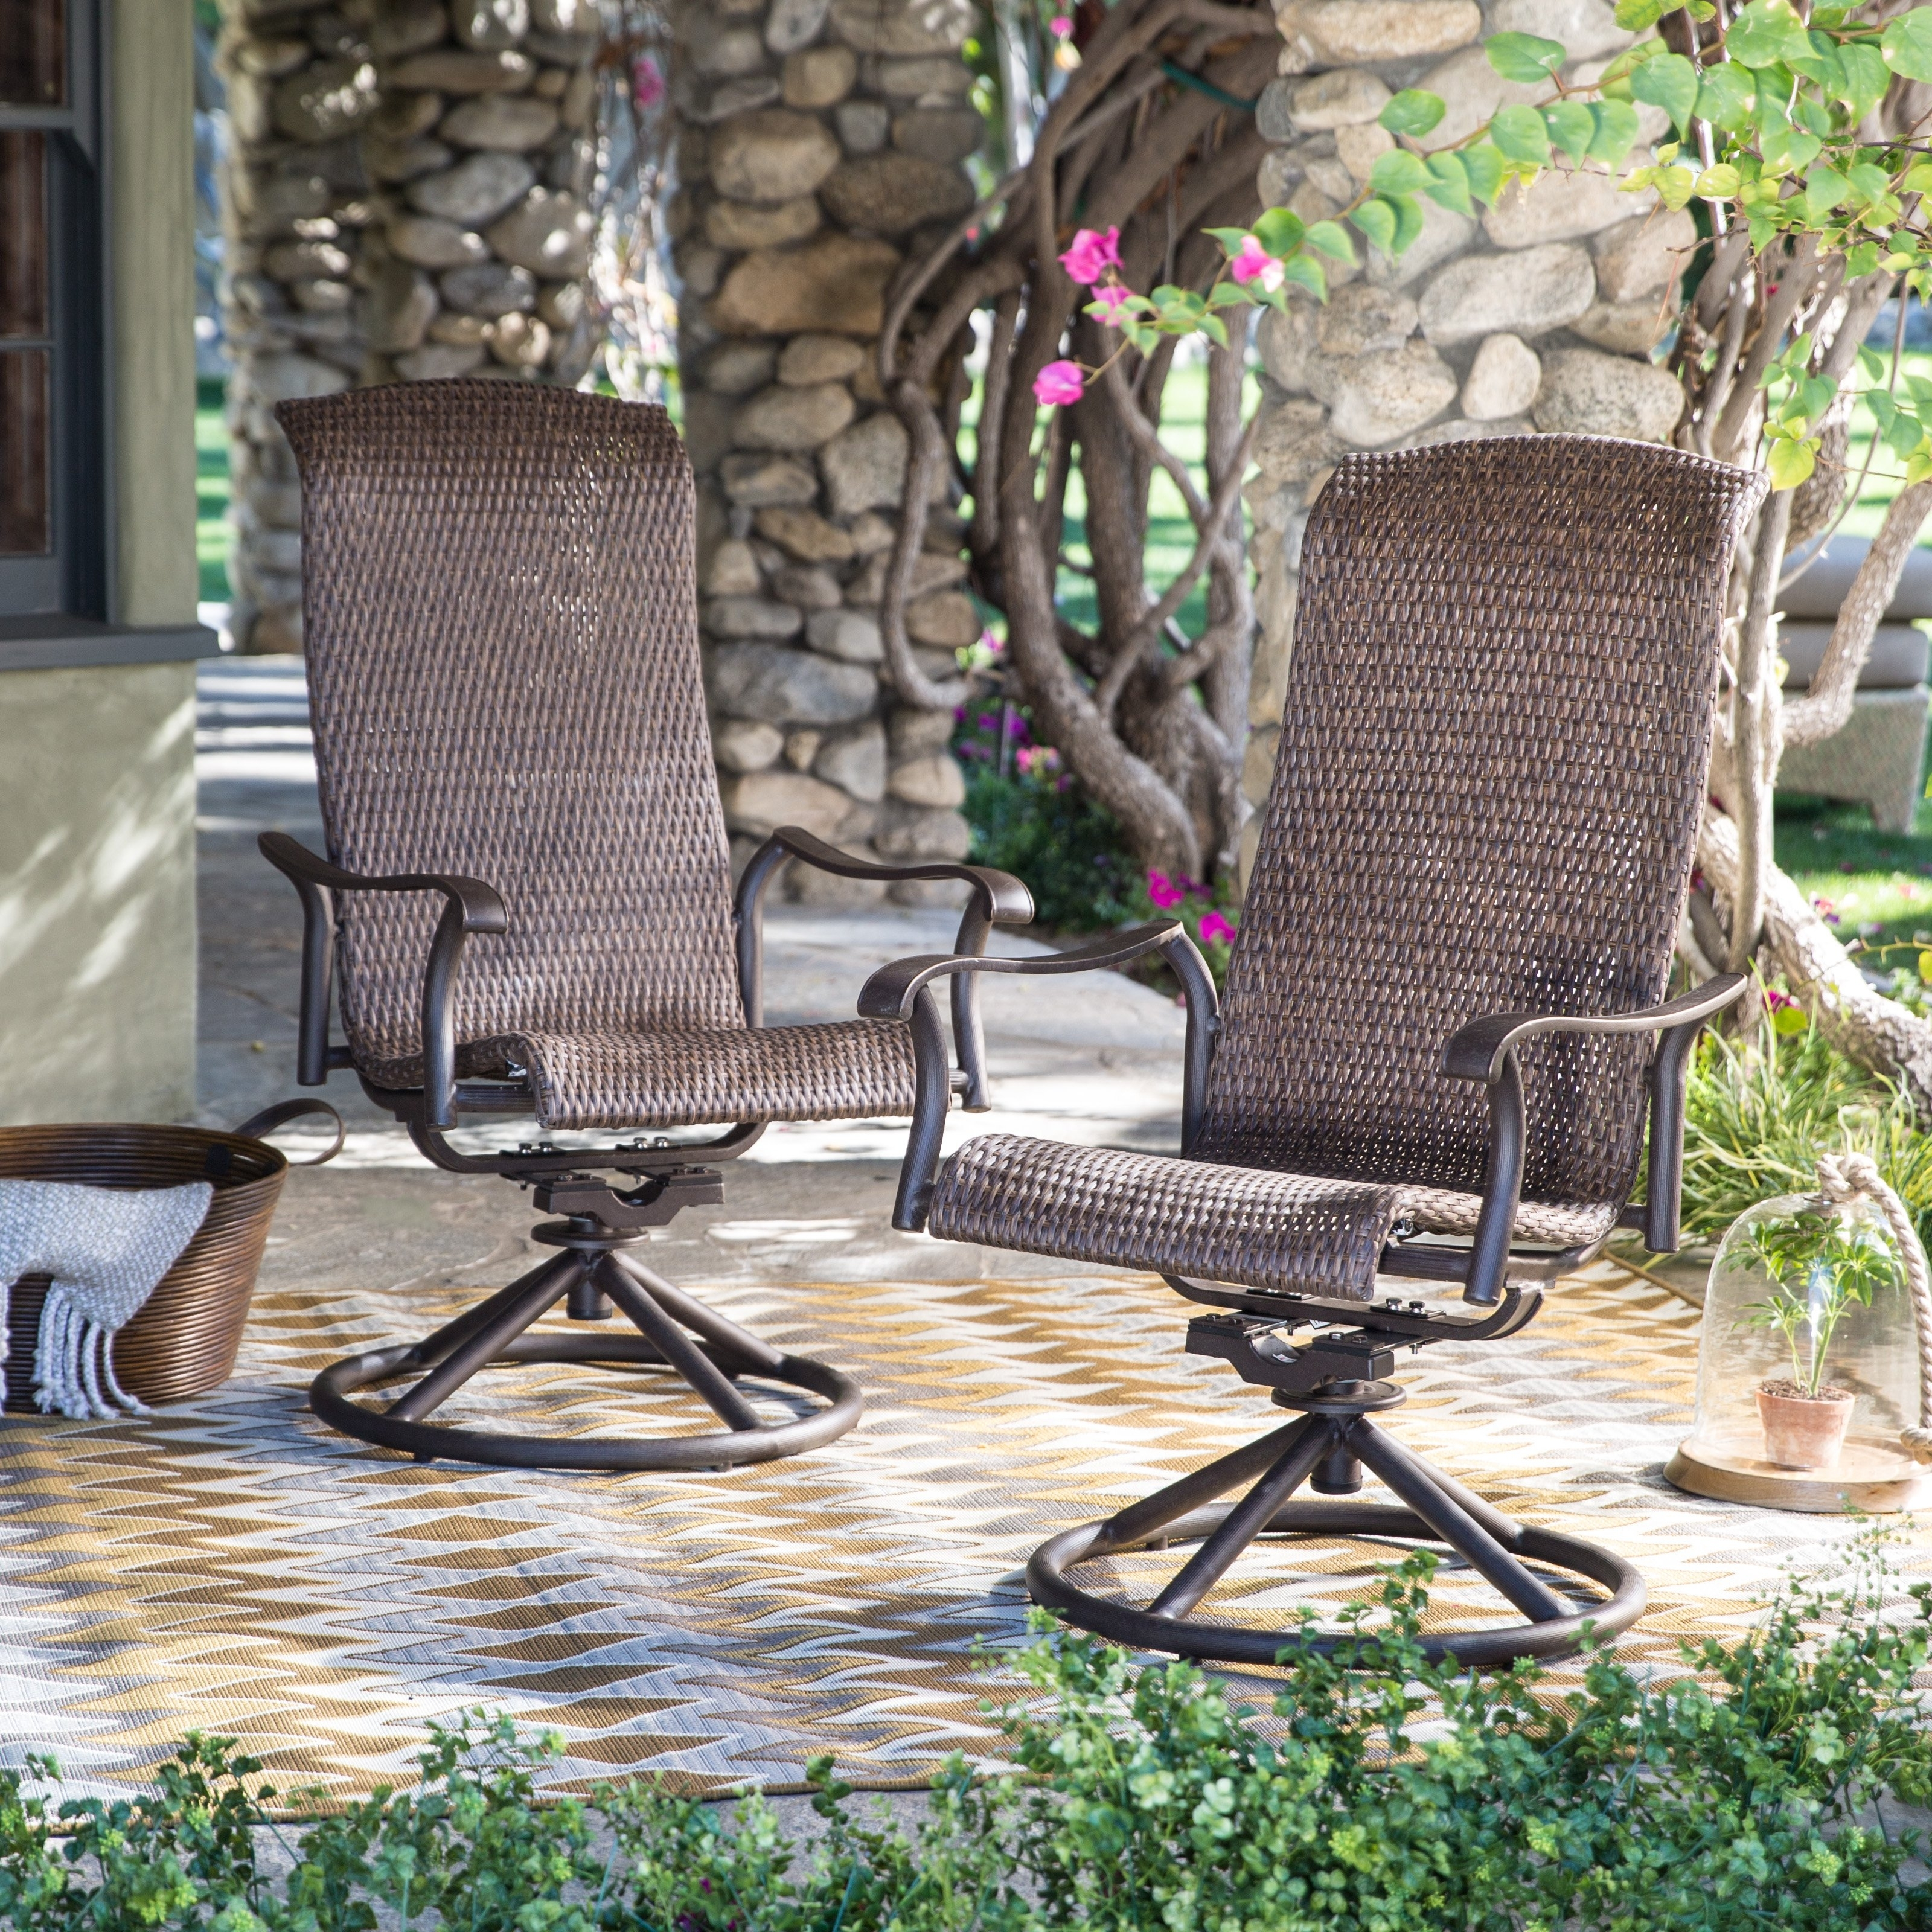 Most Current Outdoor Wicker Swivel Rocking Chair – Outdoor Designs Regarding Patio Rocking Chairs With Ottoman (View 6 of 20)